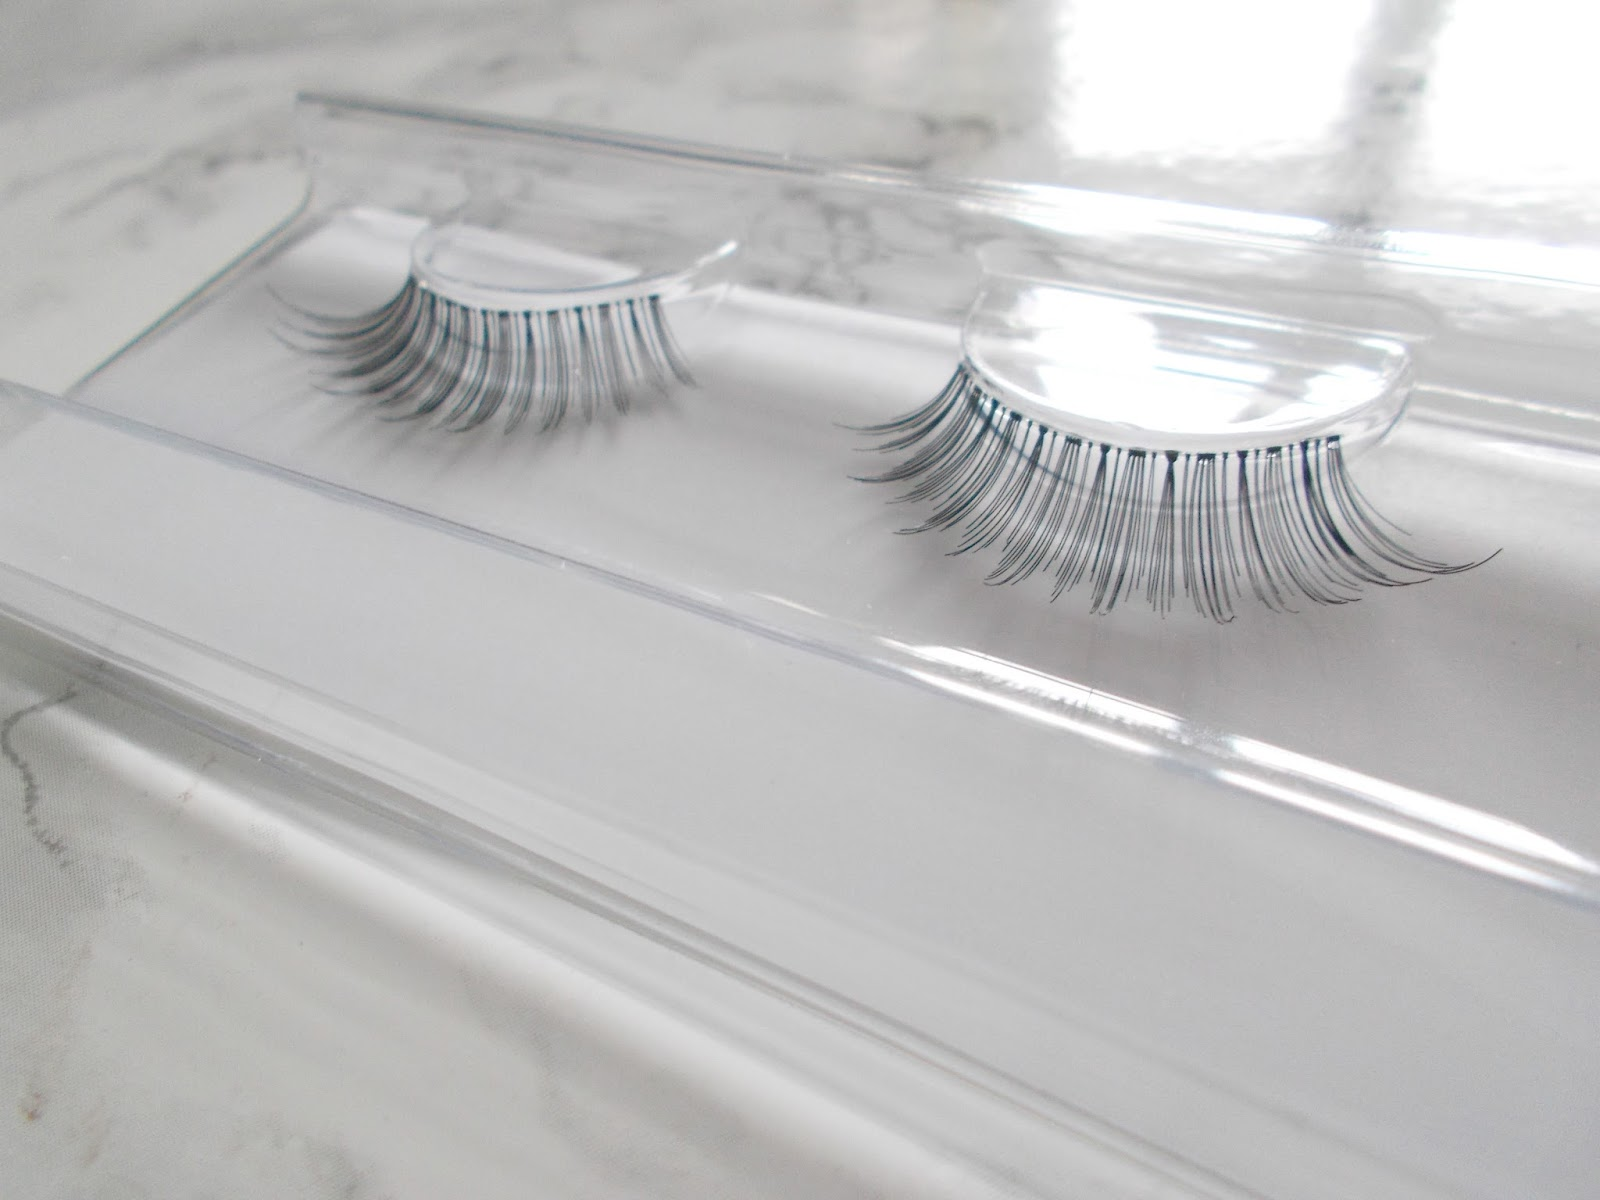 false lashes by samantha faiers oh so natural review